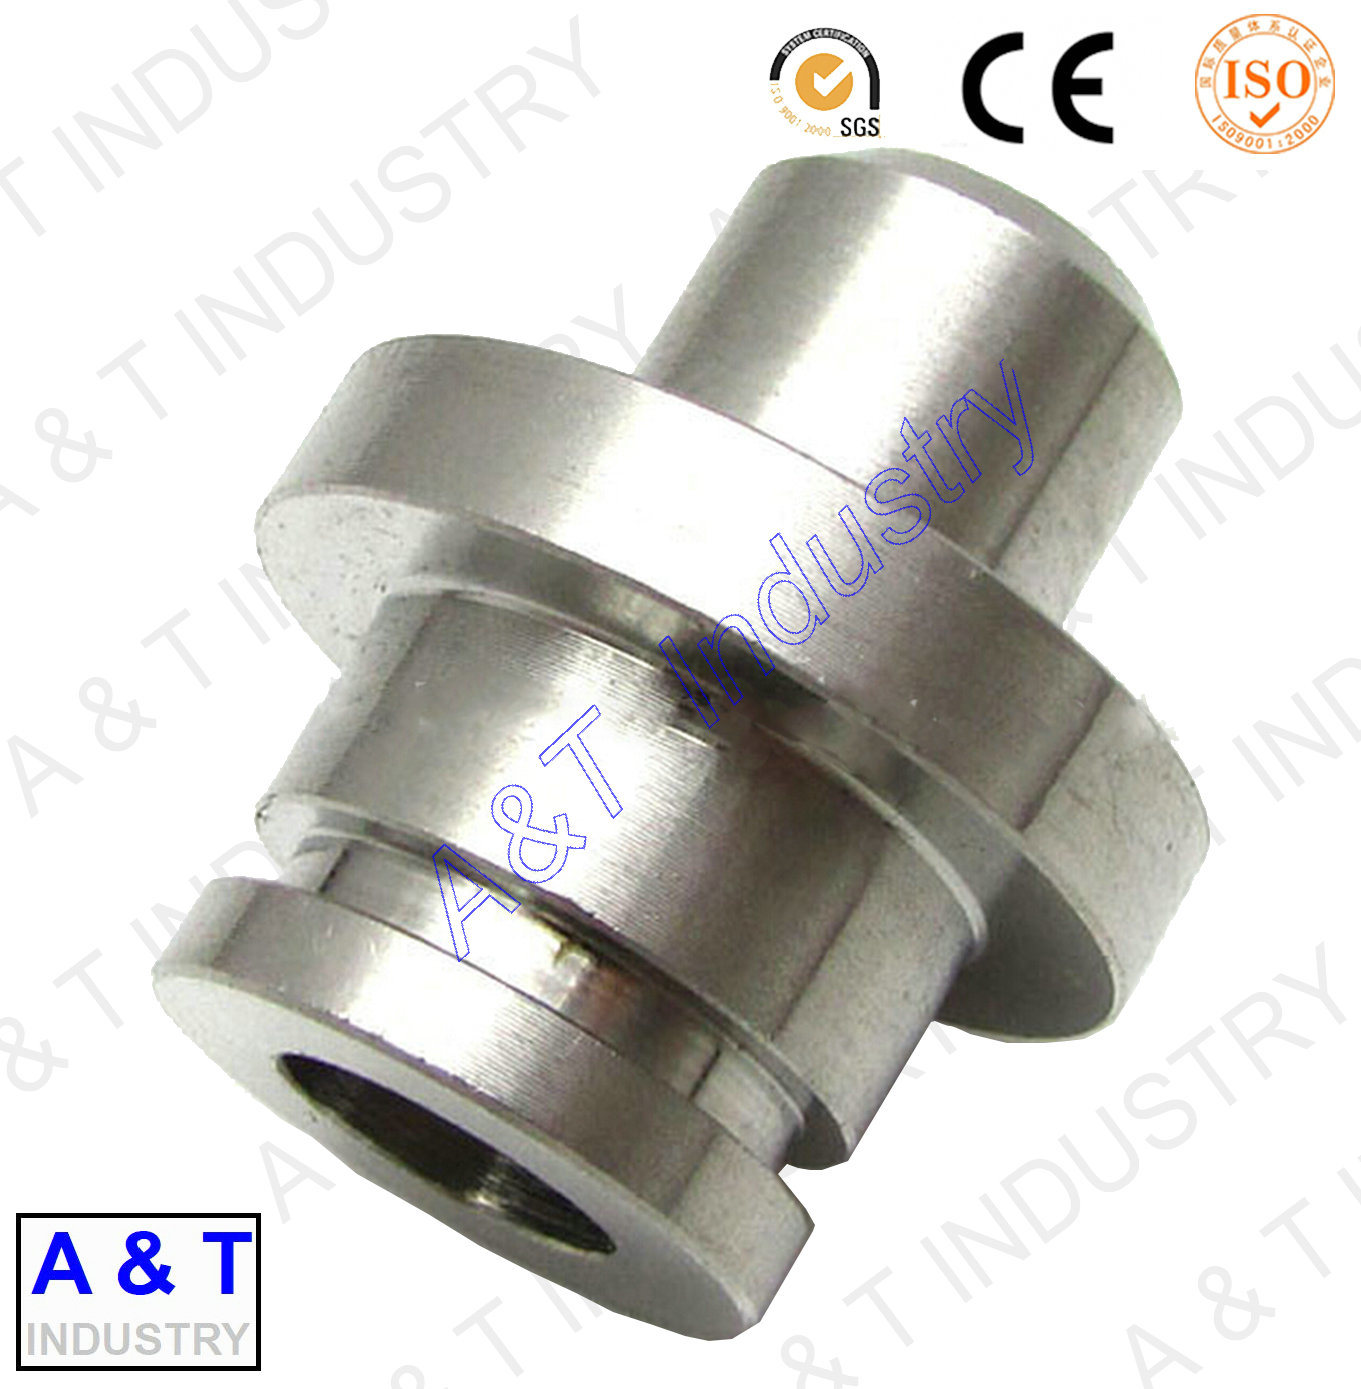 Custom-Made Stainless Steel CNC Lathed Parts for Washing Machine Parts